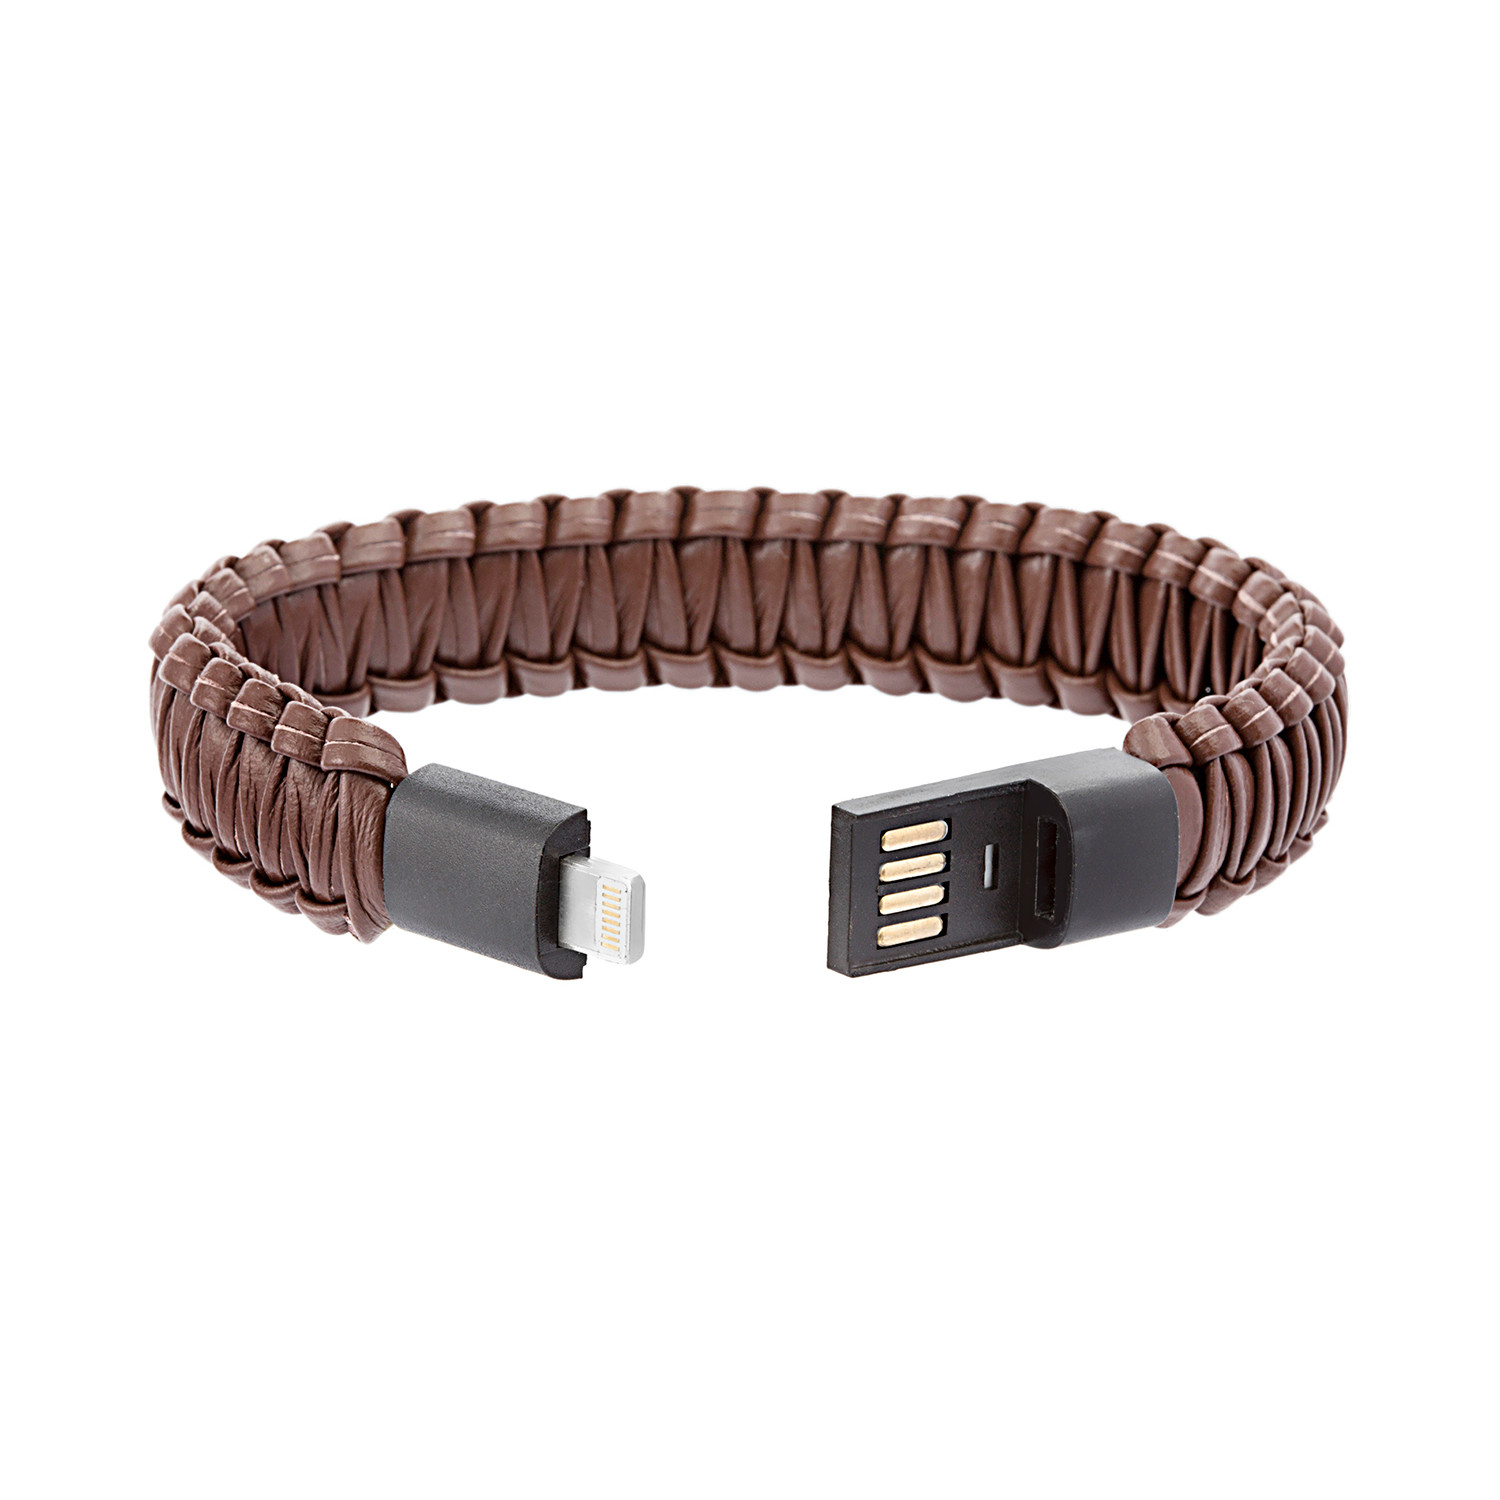 usb bracelet usb leather bracelet best bracelets 1899